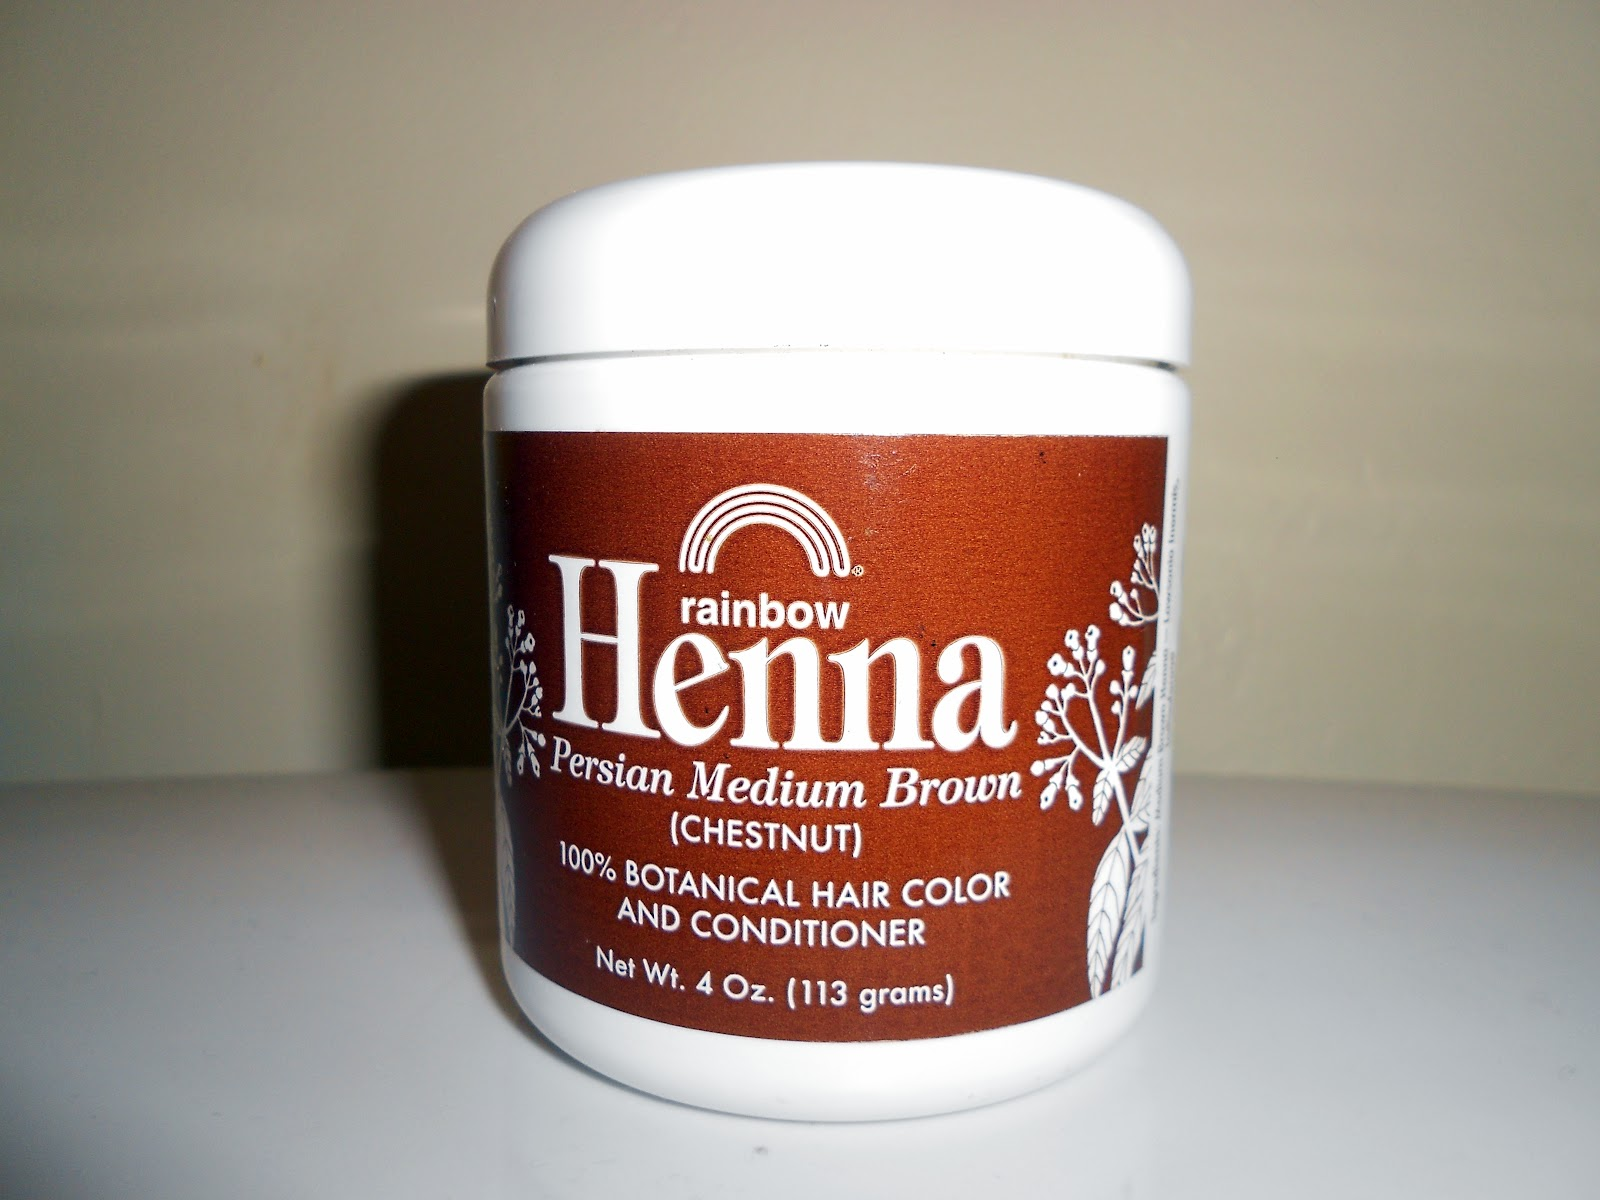 Nurture From Nature Rainbow Henna Hair Color Review